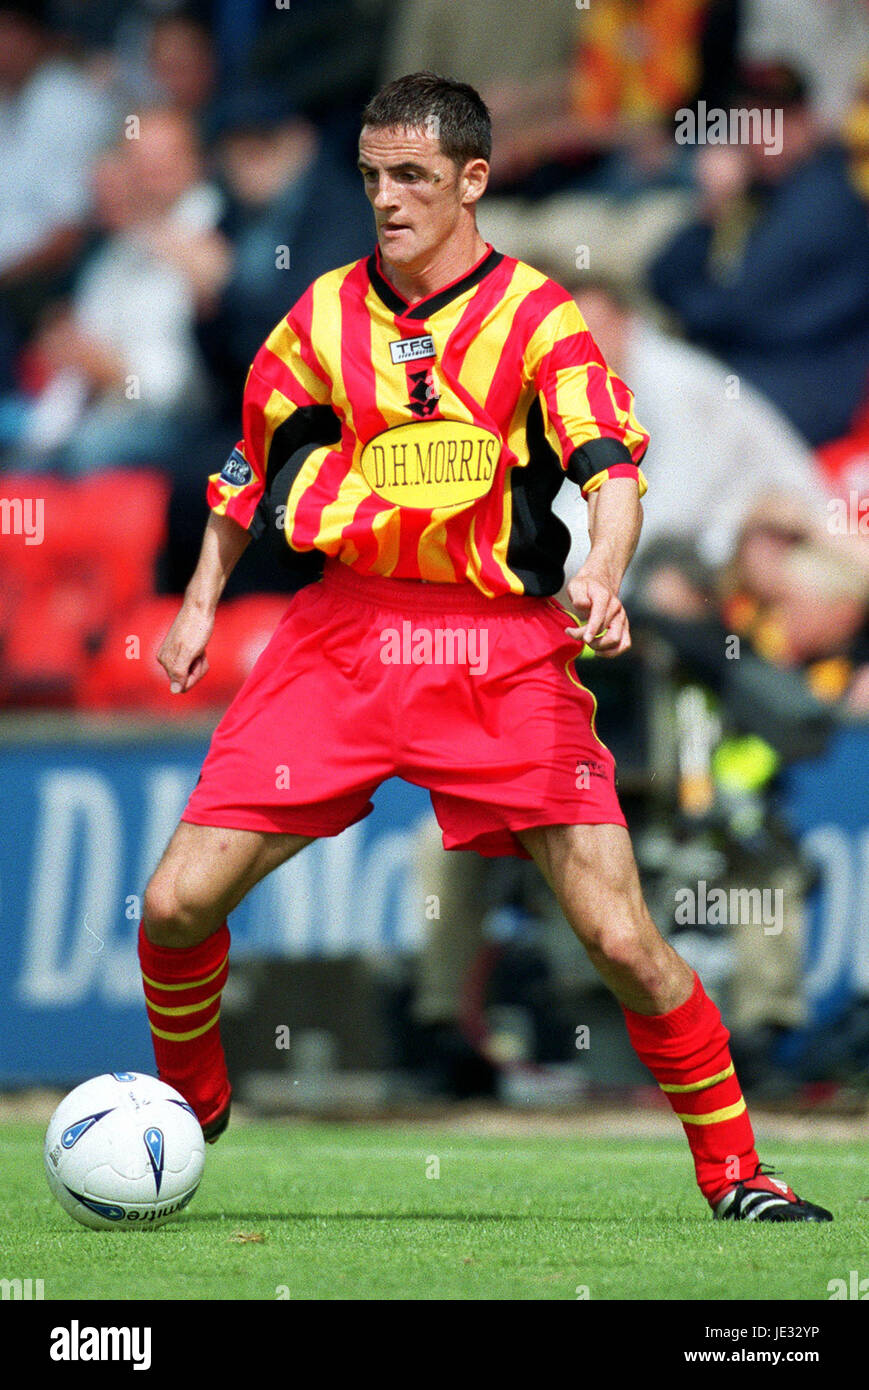 ANDY GIBSON PARTICK THISTLE FC FIRHILL STADIUM GLASGOW SCOTLAND 24 August 2002 - Stock Image